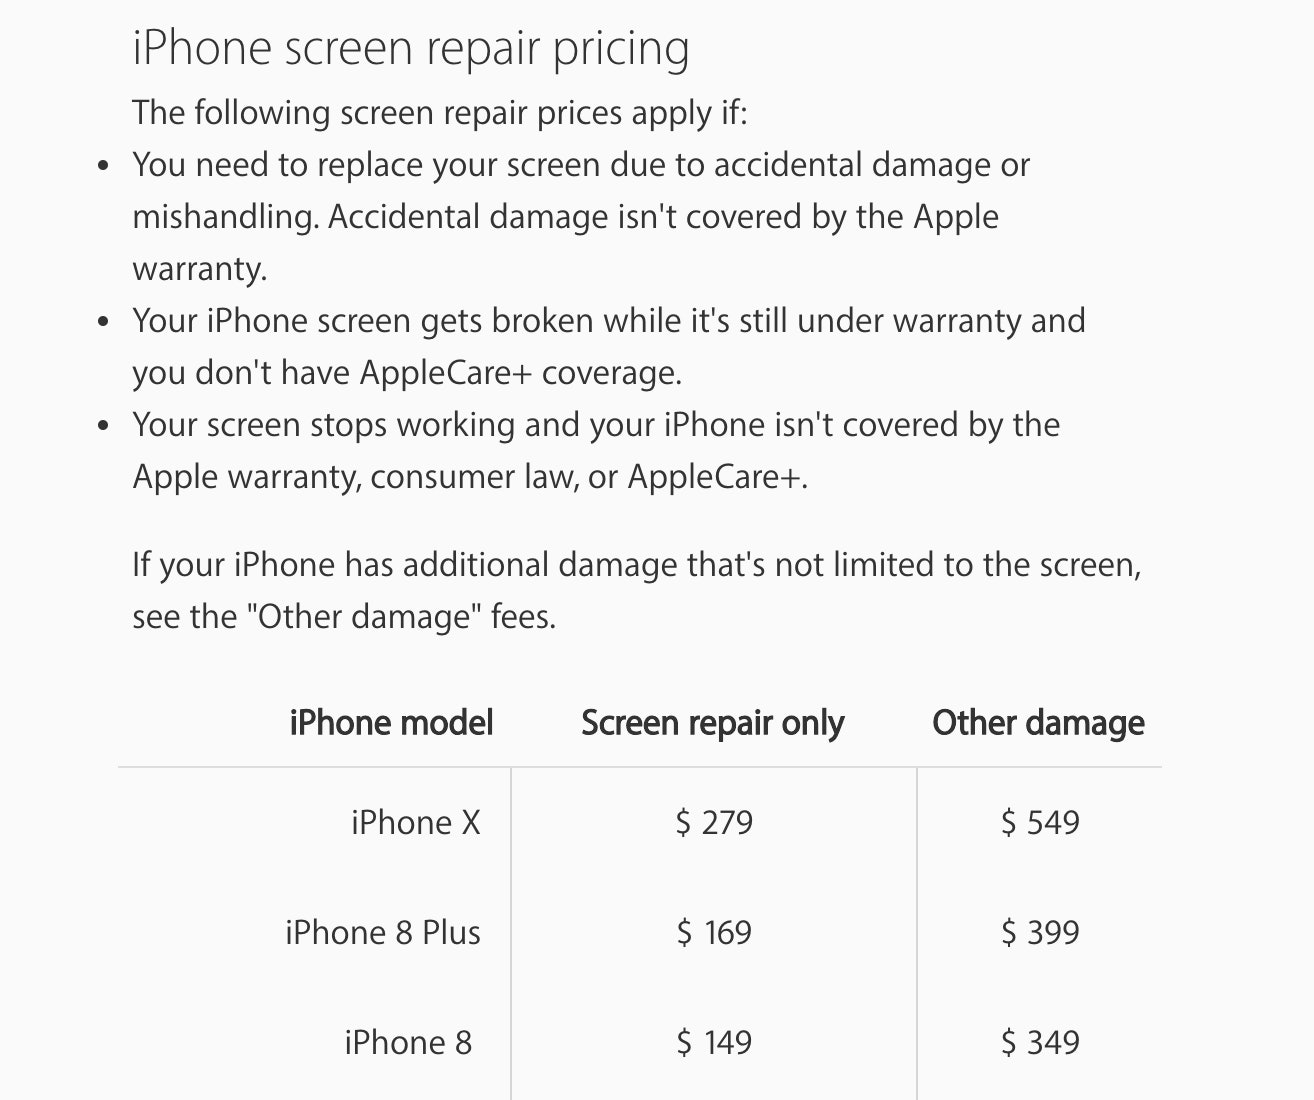 apple phone repair pricing